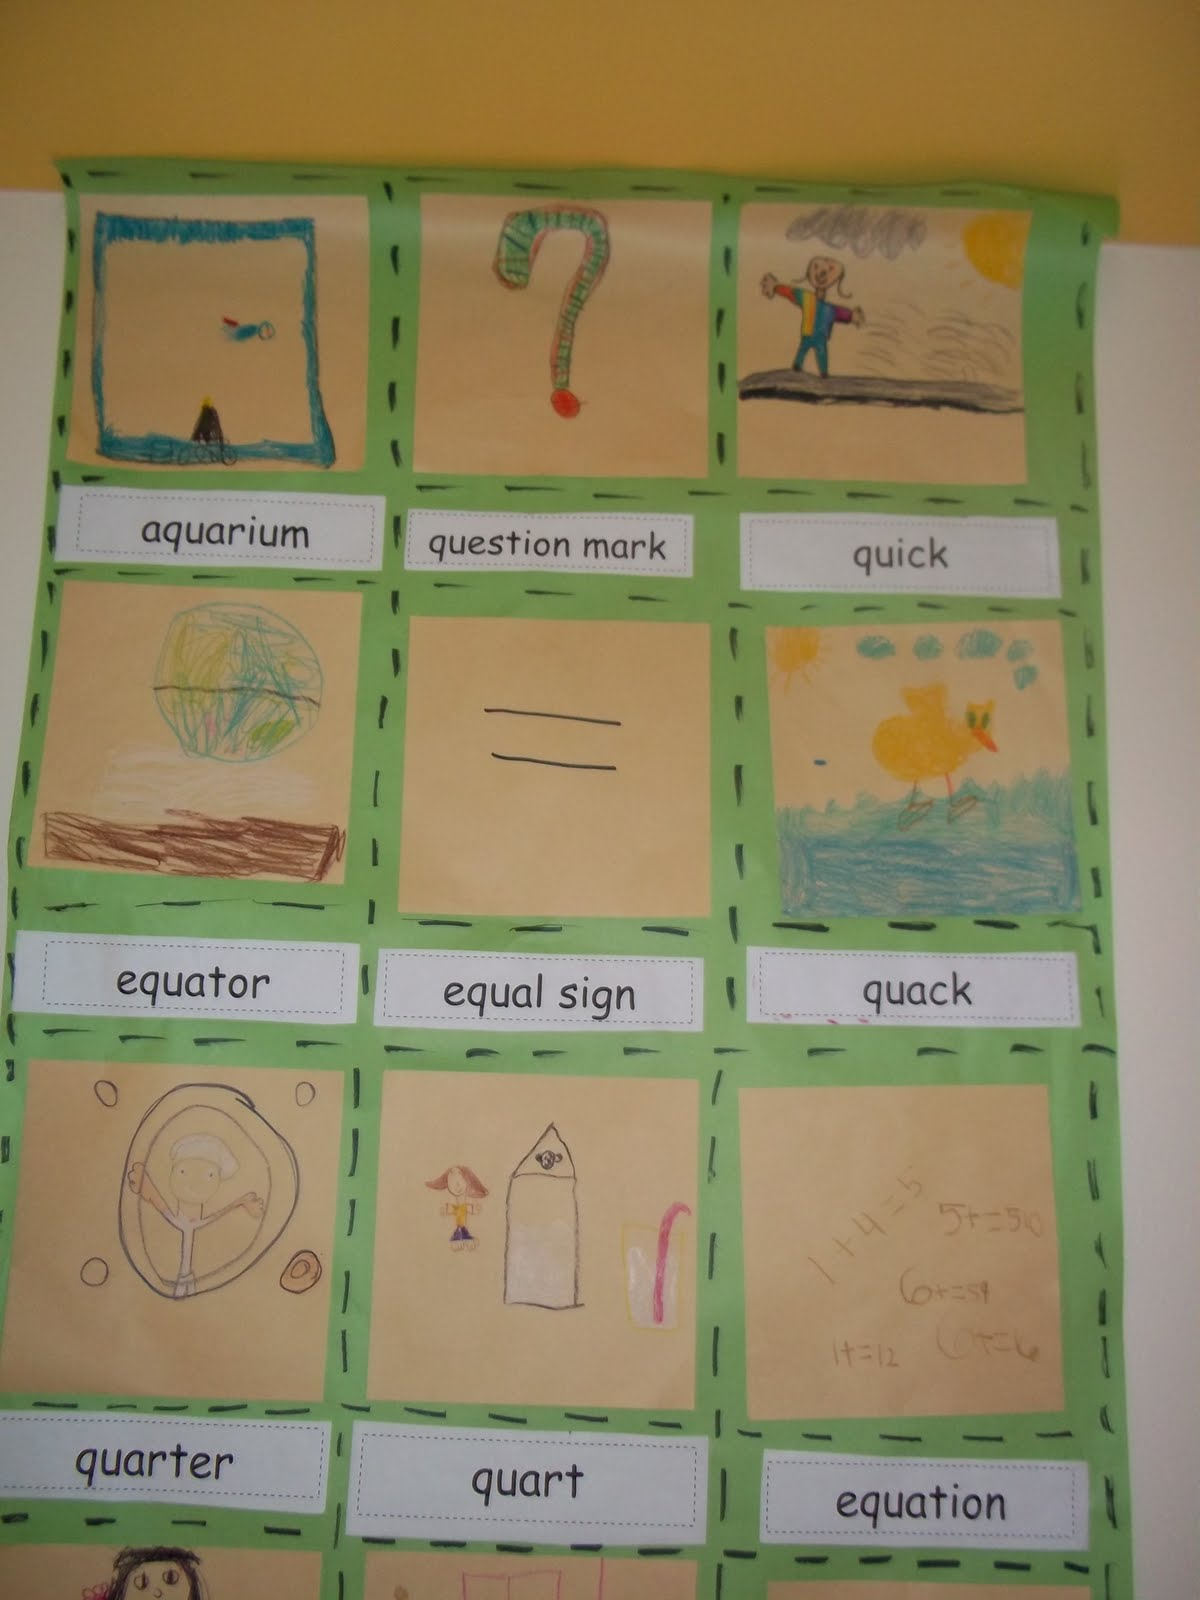 worksheet Qu Words mrs woods kindergarten class q is for quilt we read the and made a with words that had qu in them students learned some new vocabulary illustrated their word to mak